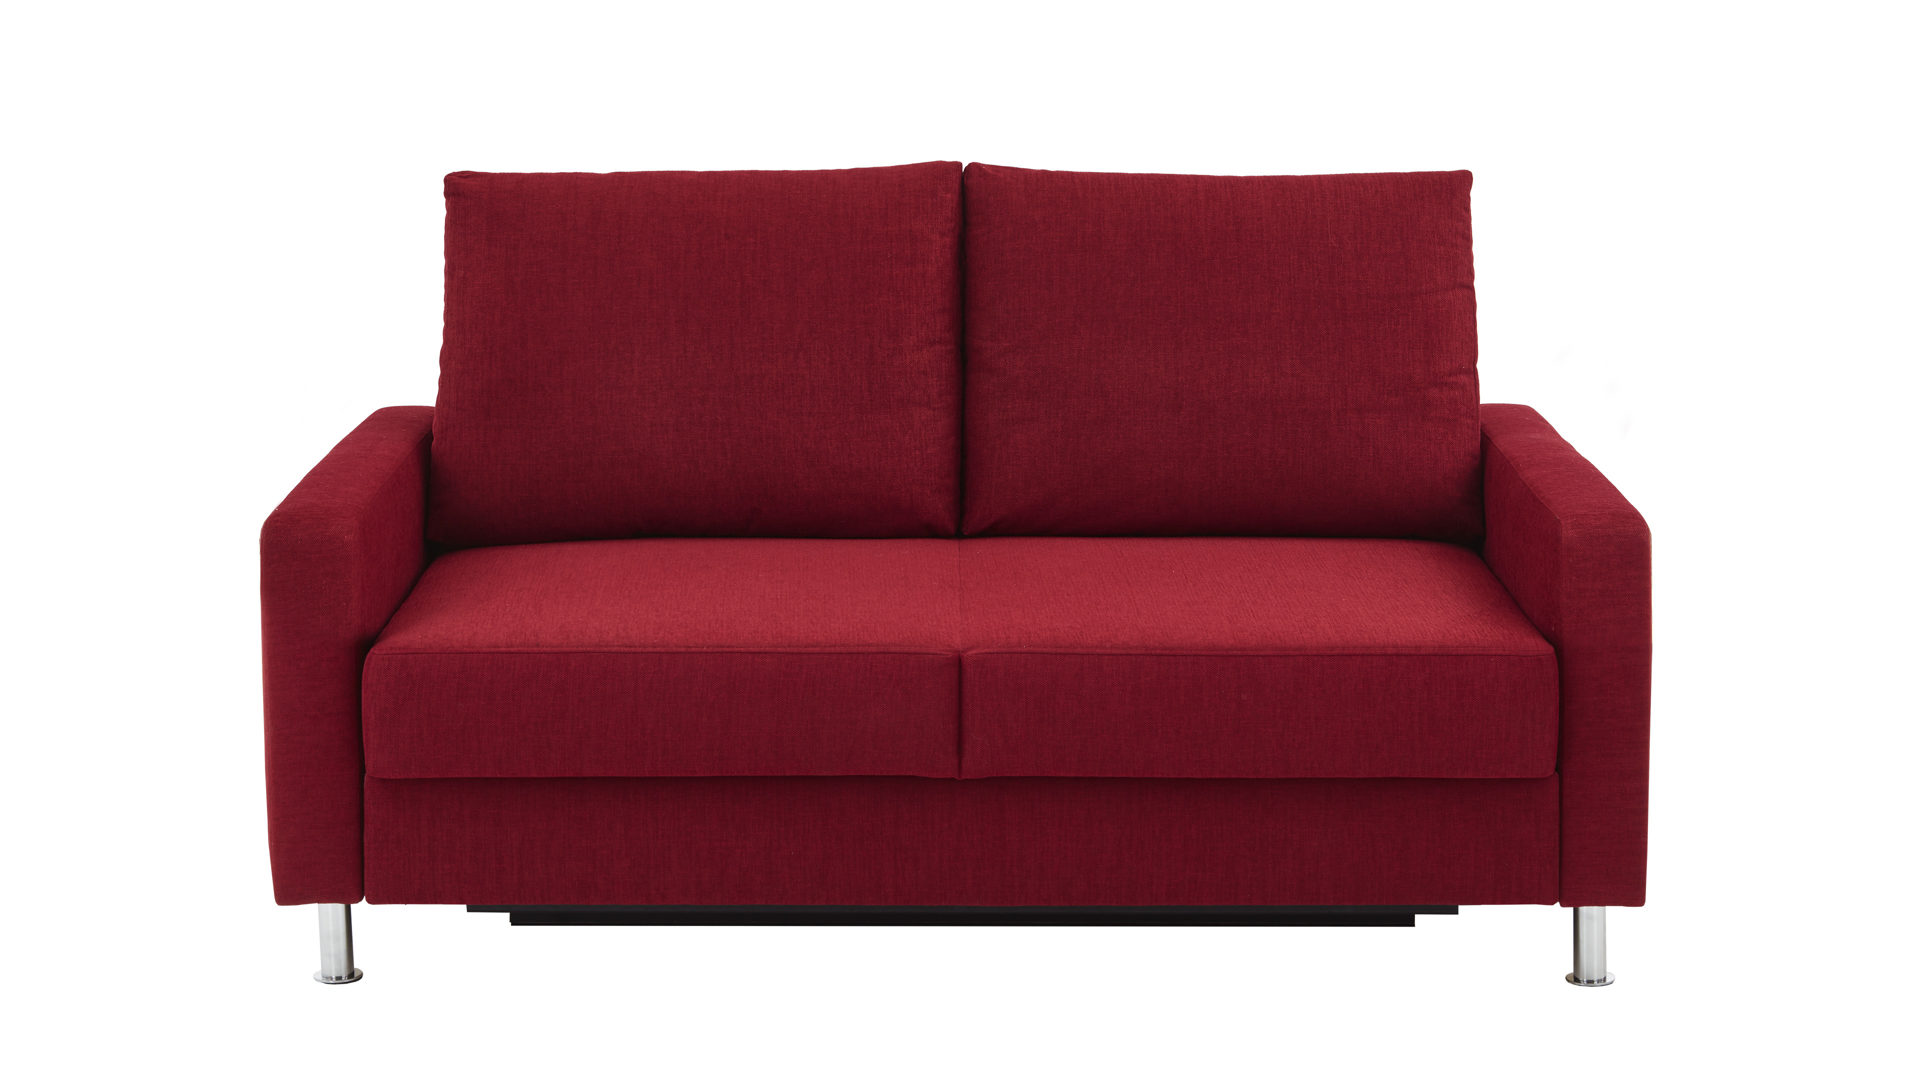 Schlafsofa PARTNERRING COLLECTION aus Stoff in Rot PARTNERRING COLLECTION Schlafsofa Multi roter Bezug 8-8014 - Breite ca. 166 cm